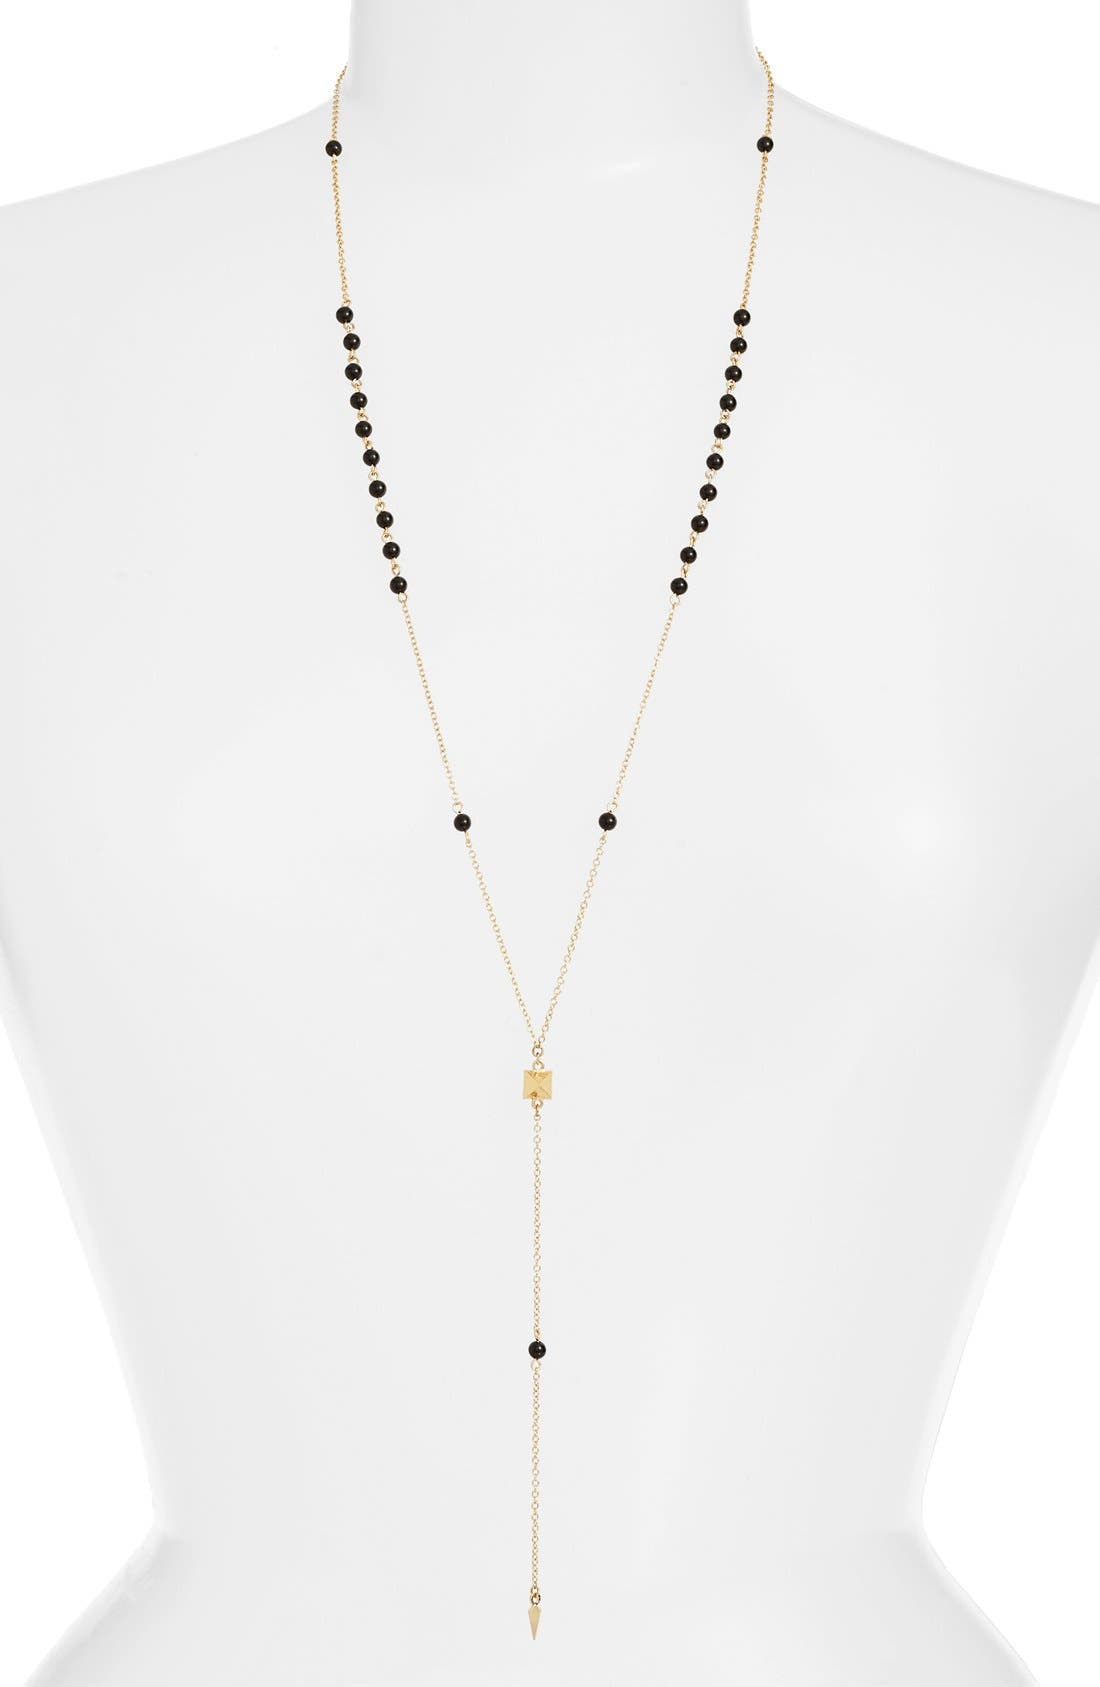 Ettika 'Waiting in Line' Beaded Onyx Y-Chain Necklace